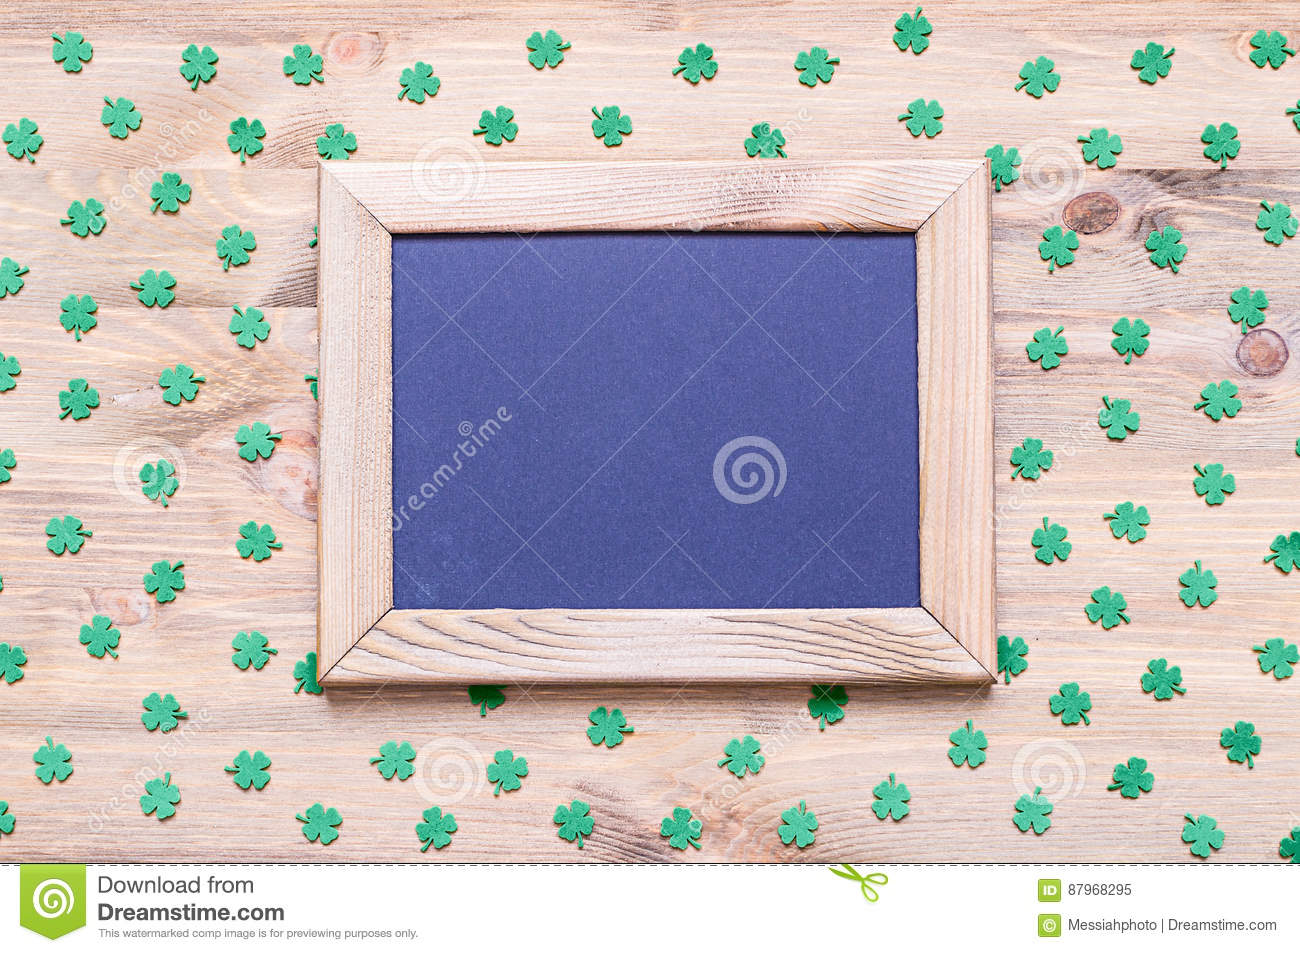 St Patrick`s Day background with green quatrefoils on the wooden background